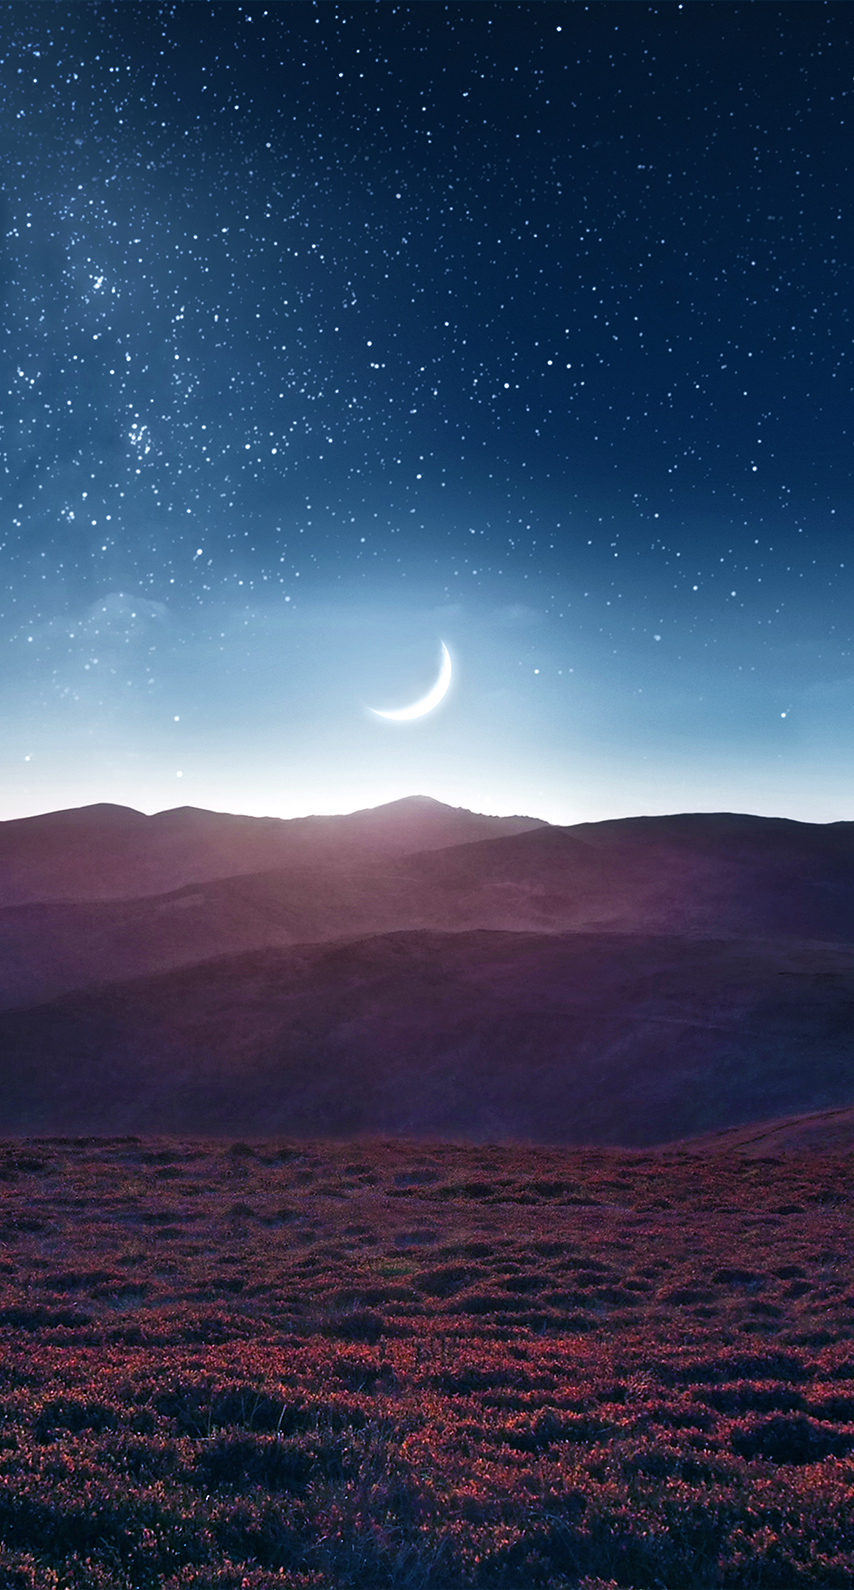 sky, night, moon, sunset, galaxy, field, mountain